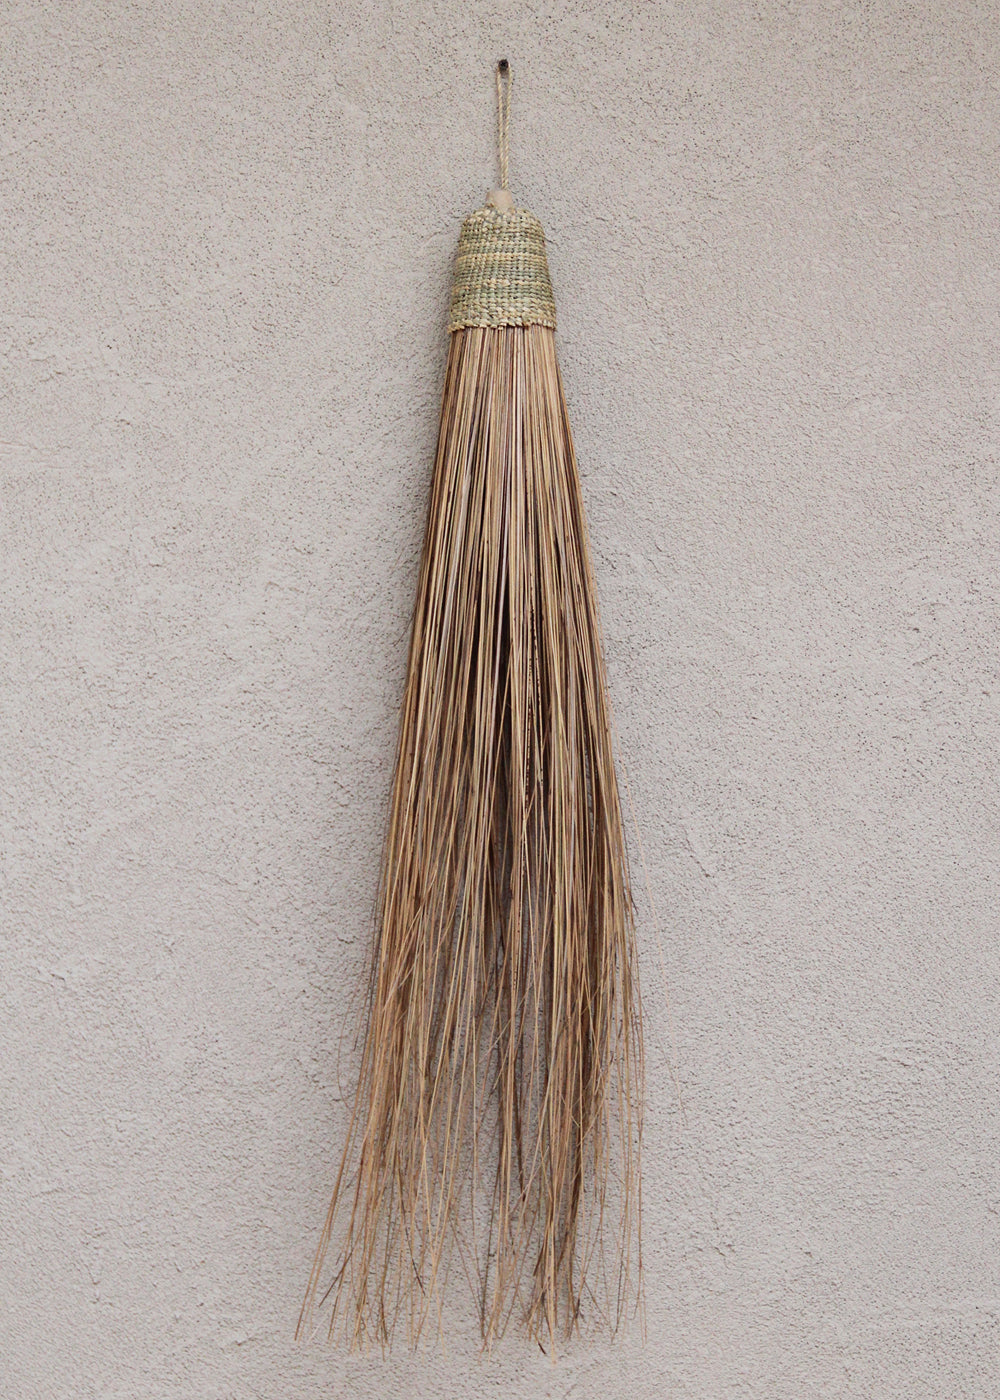 Mawa Broom Woven The Dharma Door